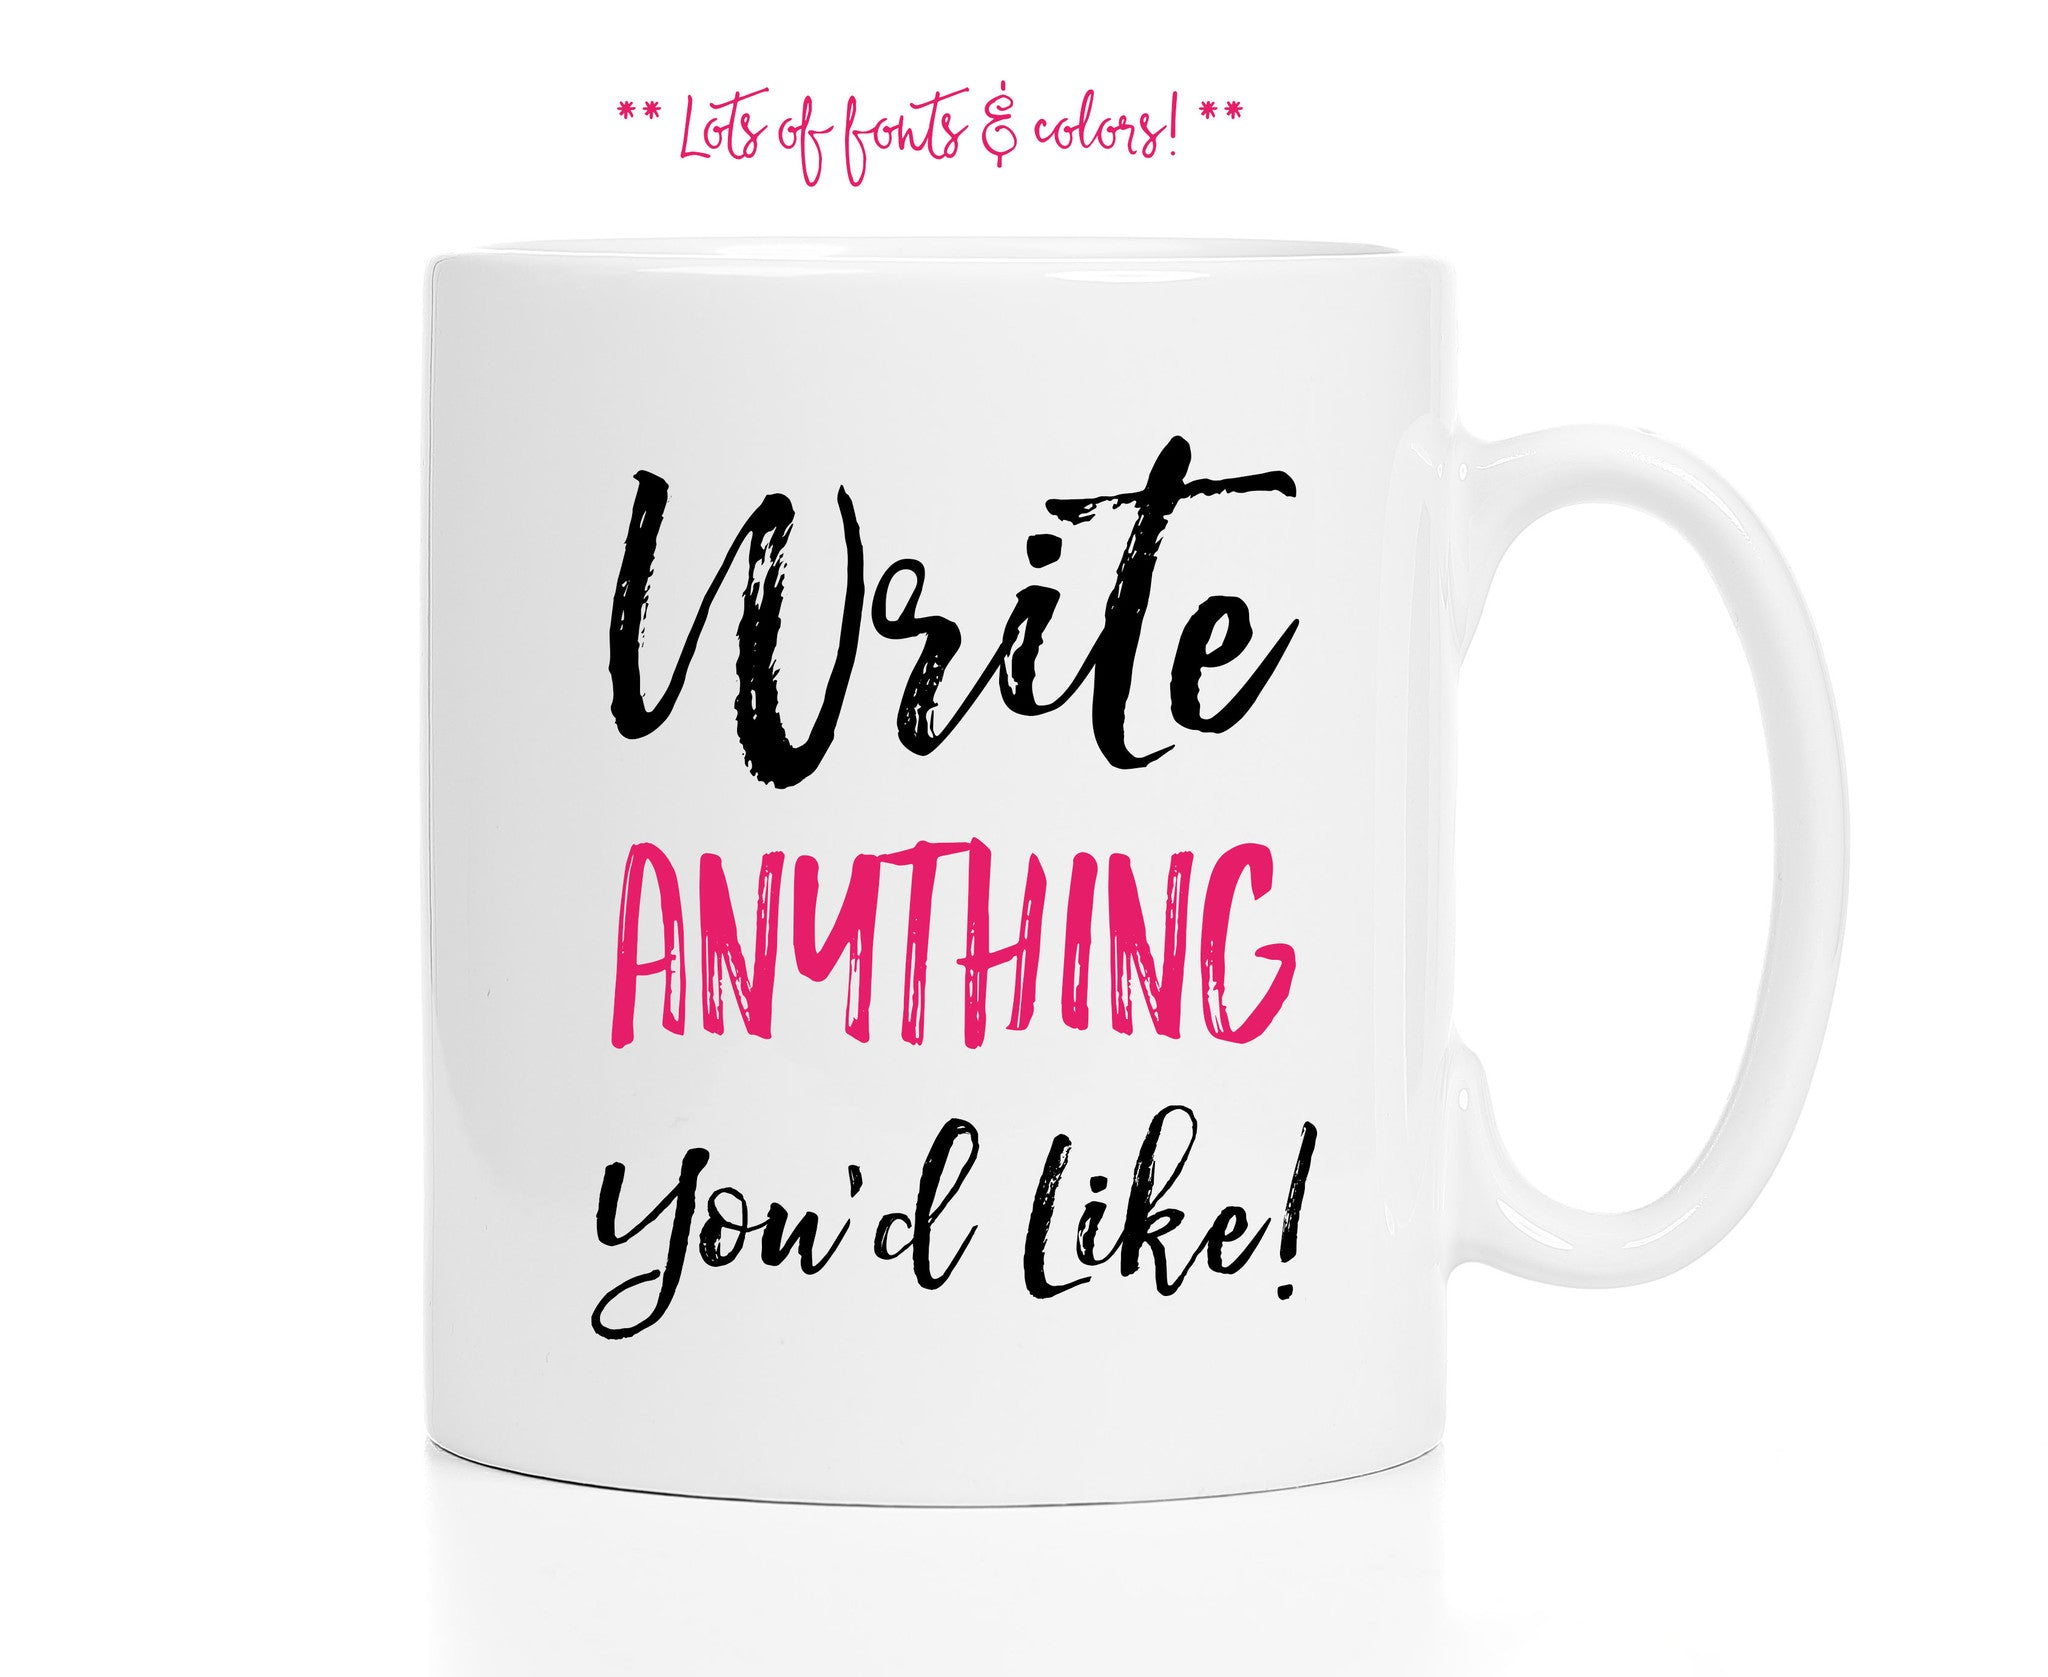 Custom Mug -- Any Words You'd Like!